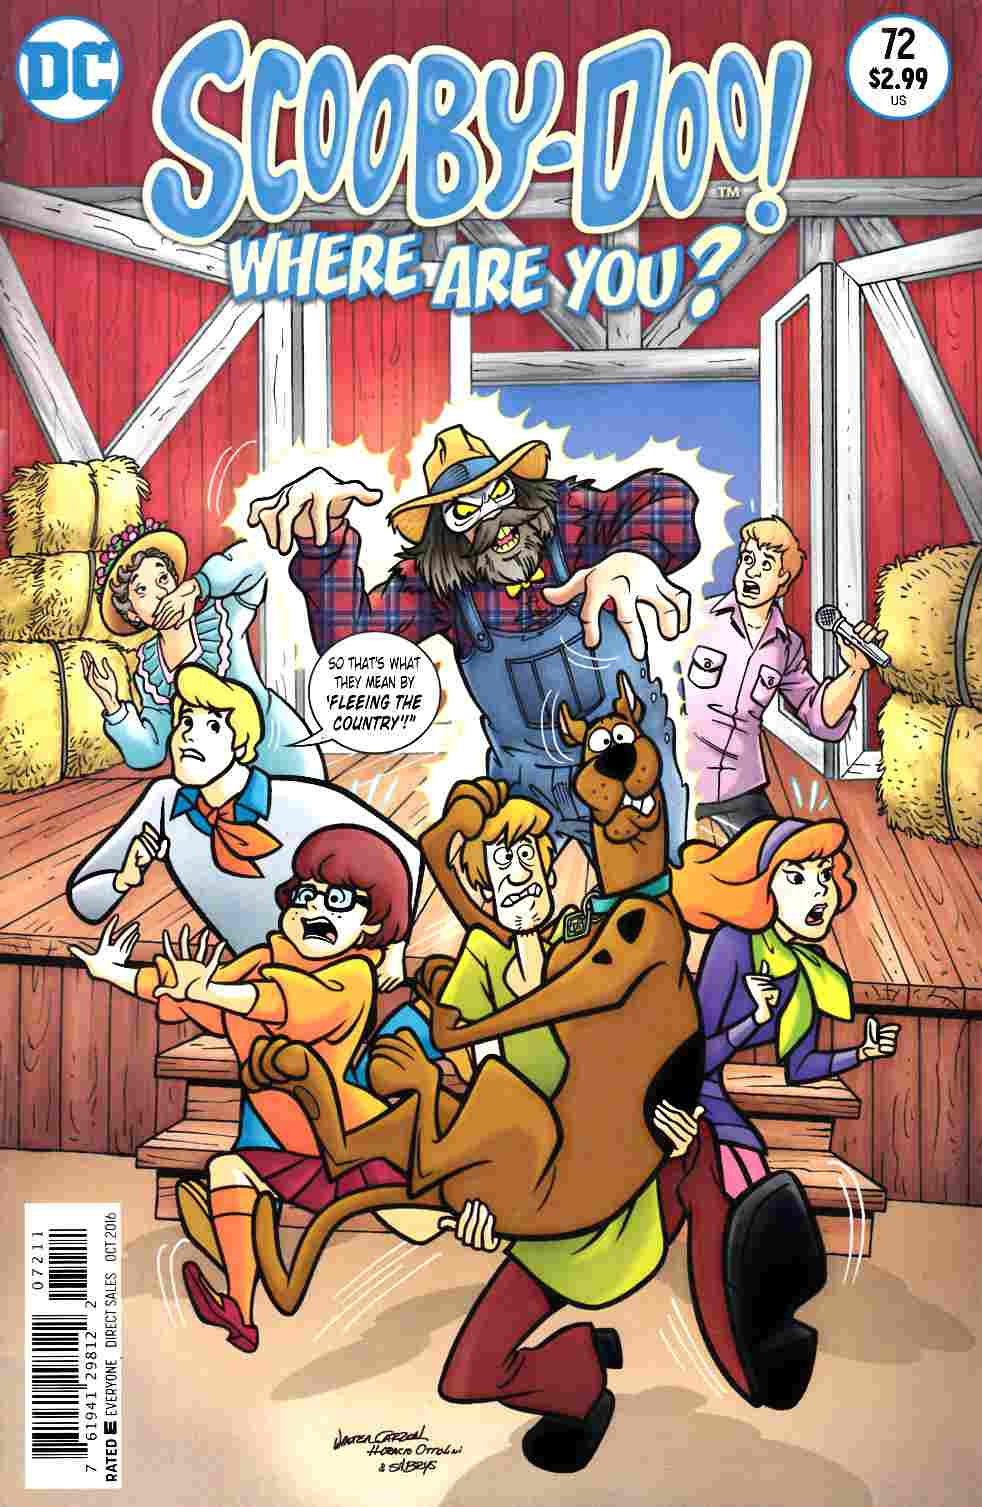 Scooby Doo Where Are You #72 [DC Comic] THUMBNAIL